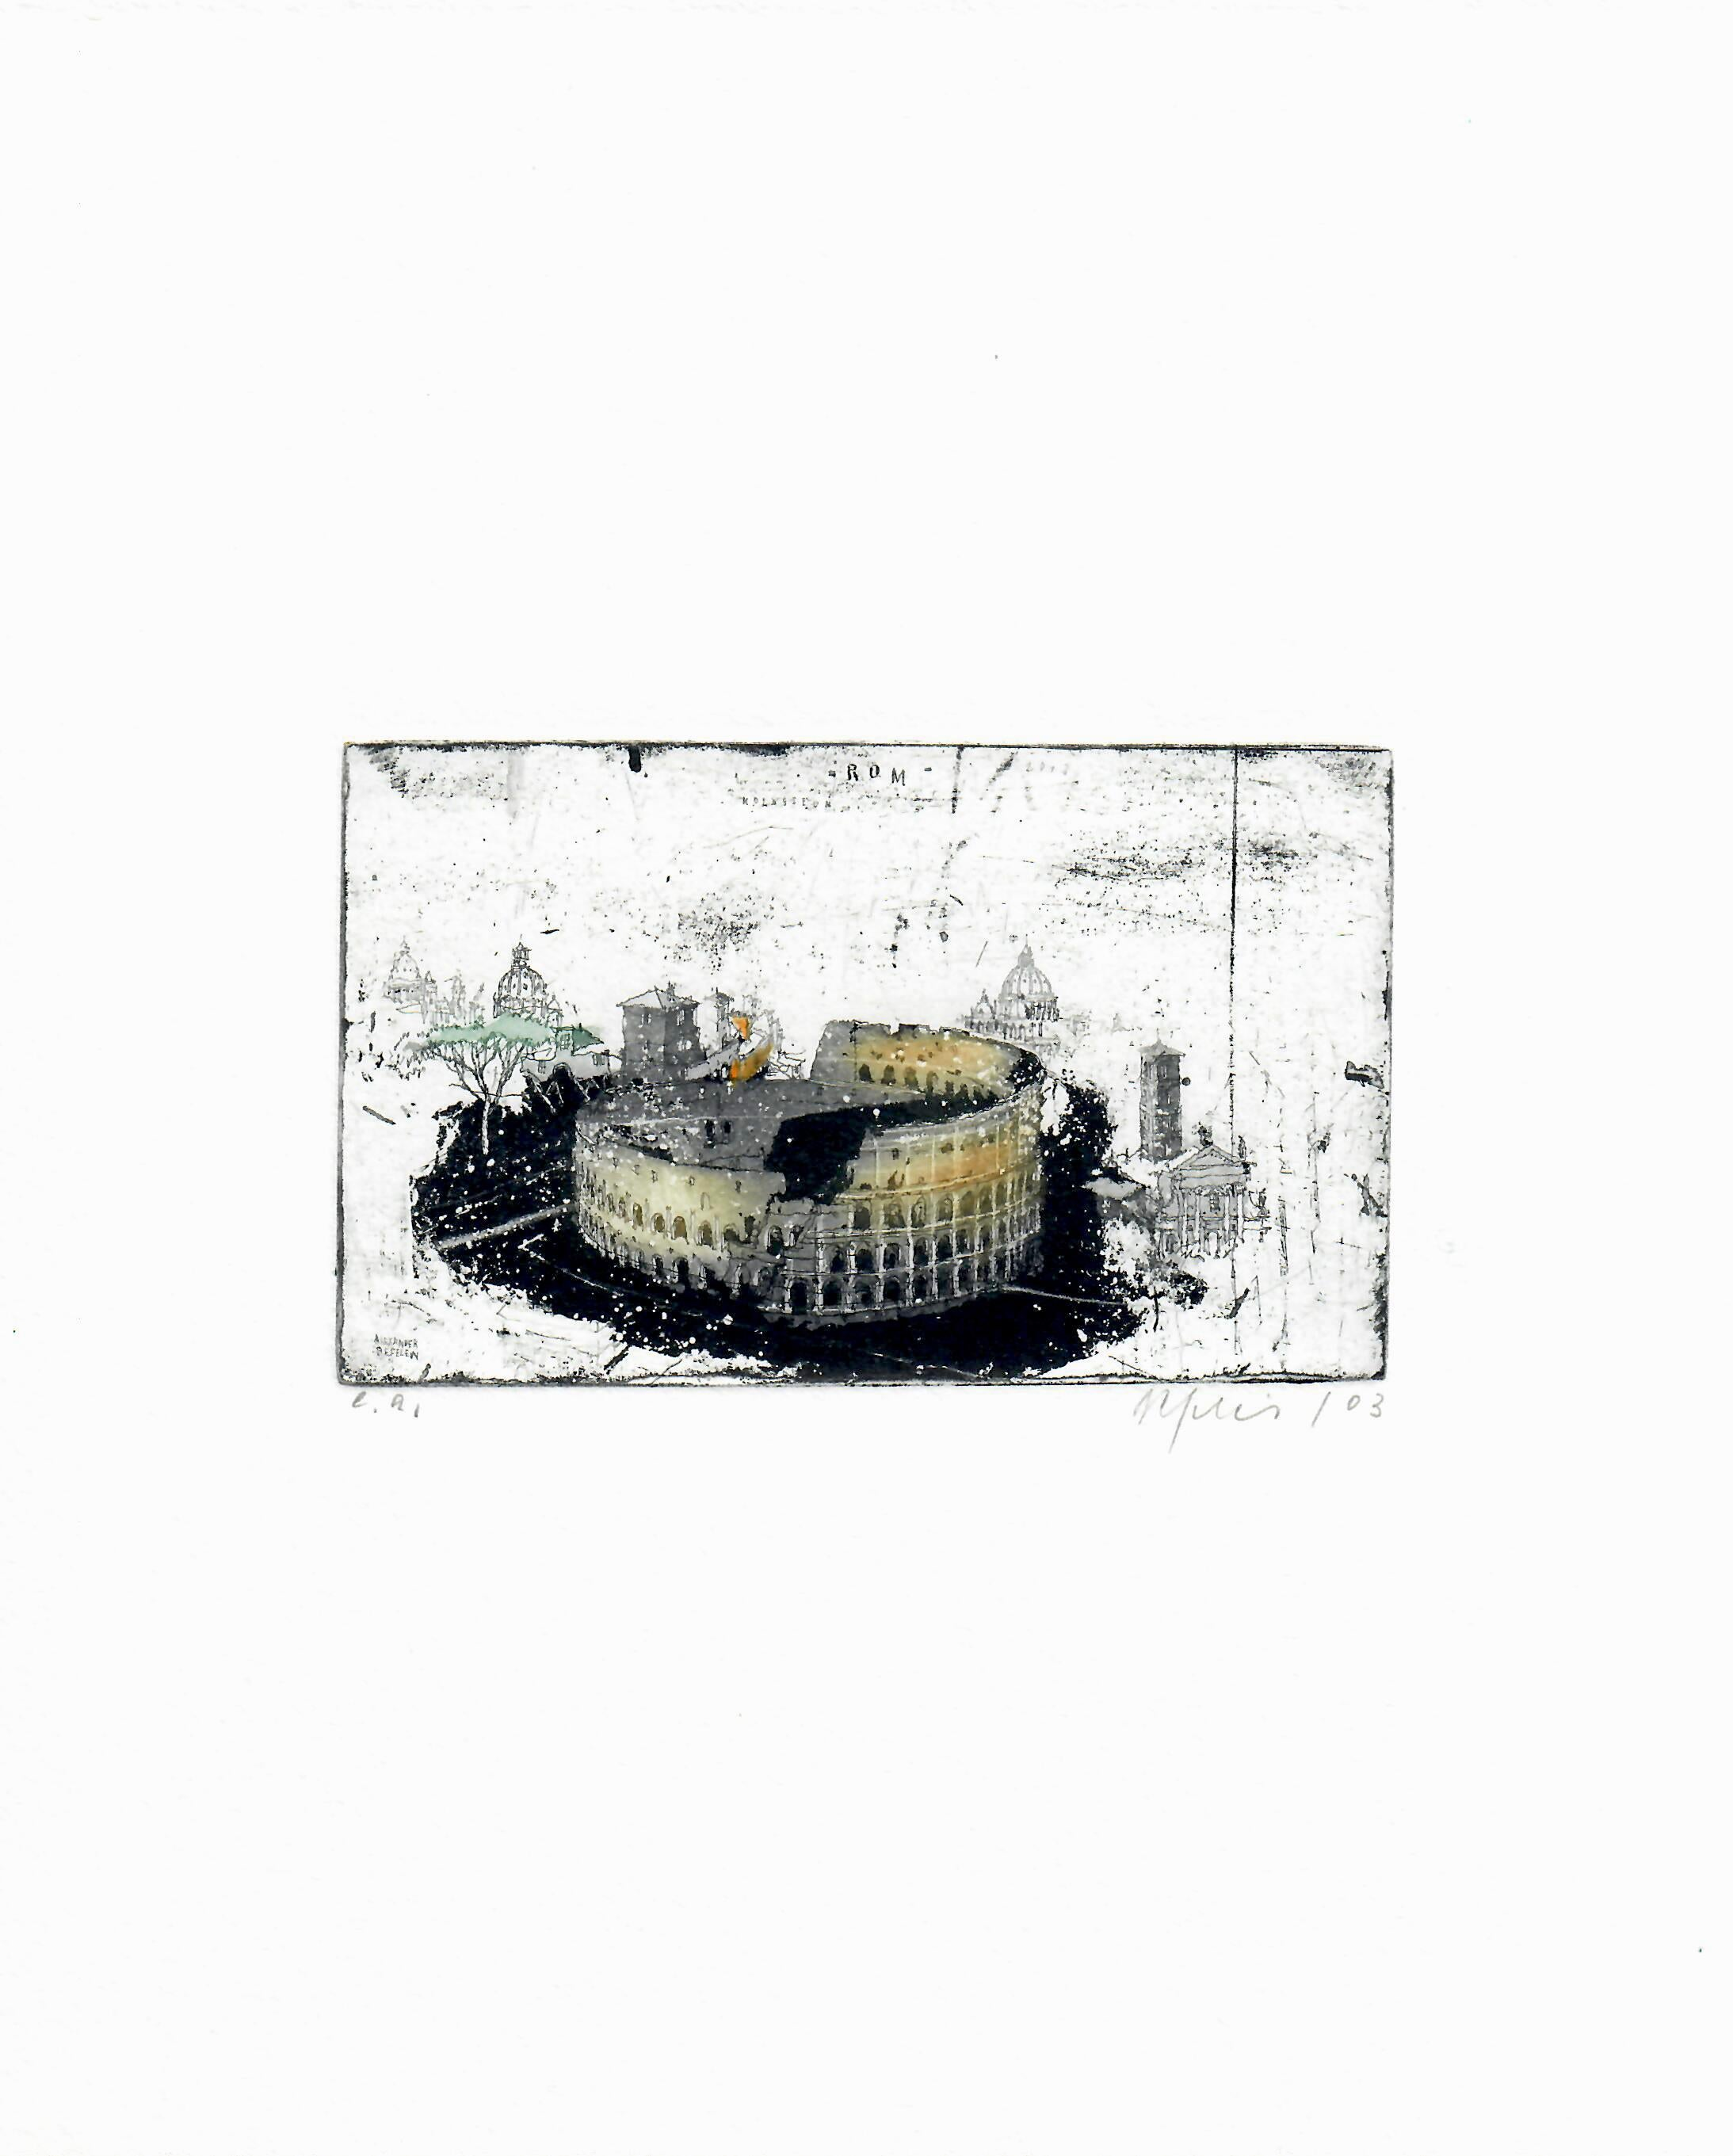 Rome Coliseum, Alexander Befelein Contemporary Limited Edition Print Etching